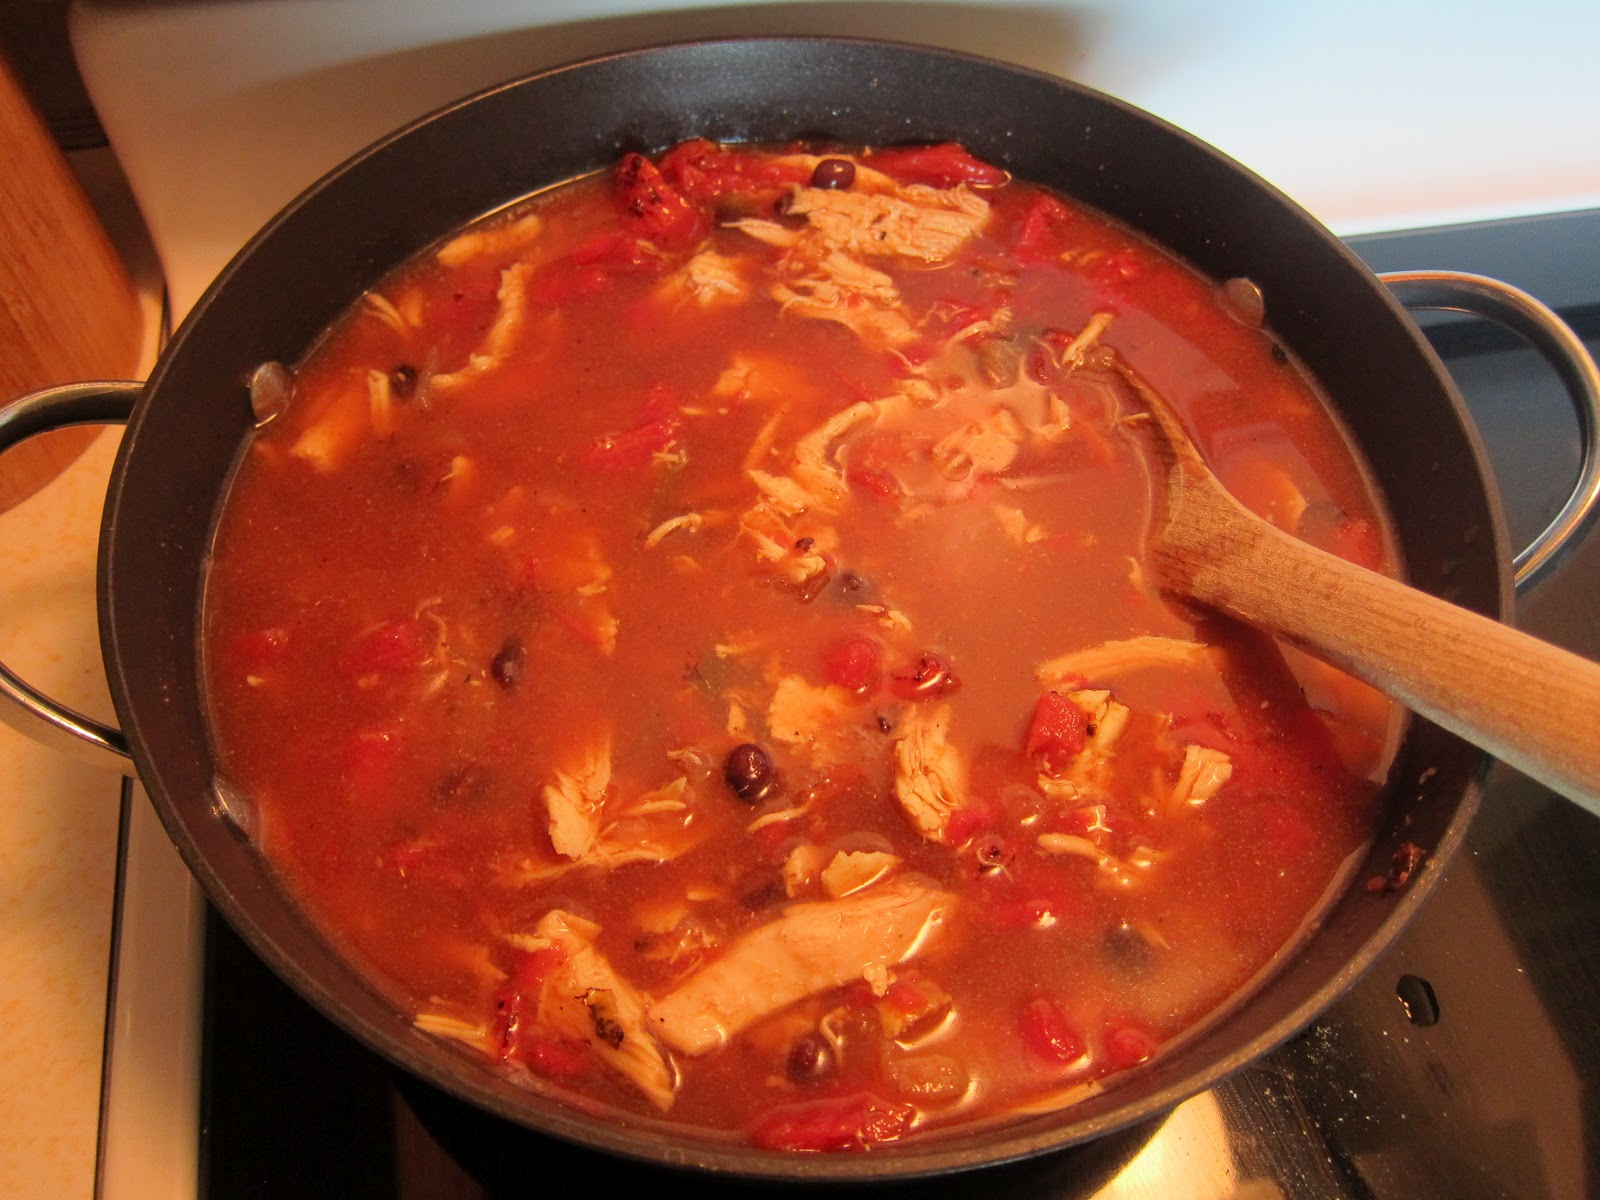 ... Good Life with Megan and Munches: Leftover Uplift: Chicken Fajita Soup